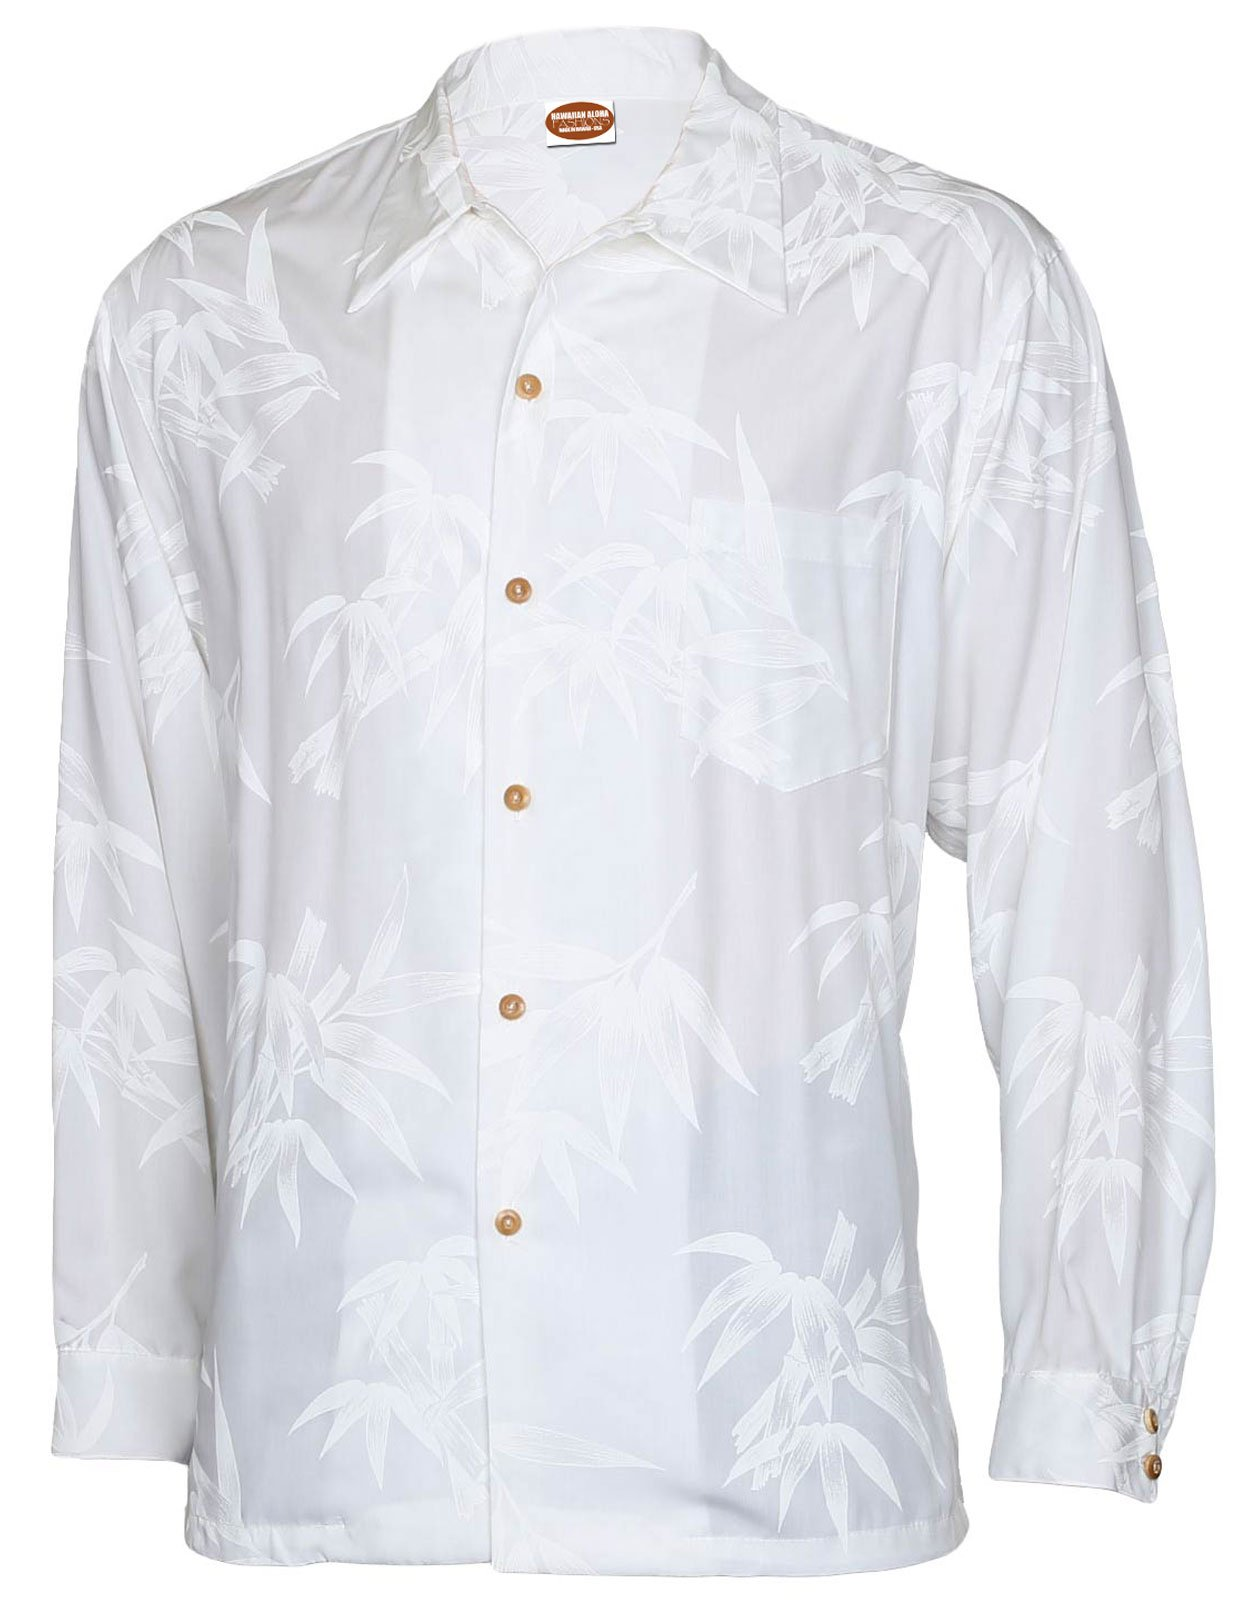 Long Sleeves Hawaiian Wedding Shirt Rayon Tropical Bamboo Design, MEDIUM, WHITE